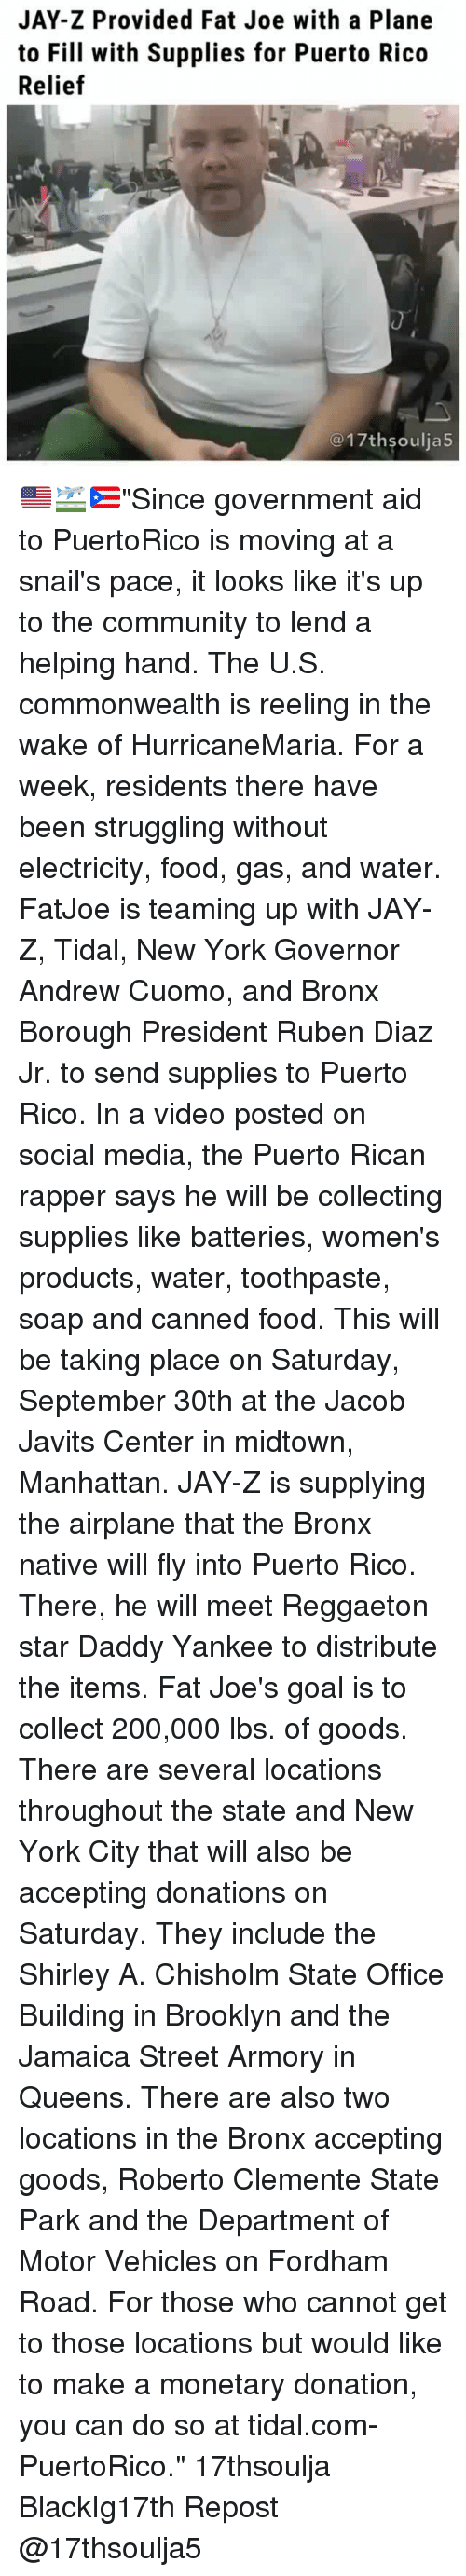 """Reggaeton: JAY-Z Provided Fat Joe with a Plane  to Fill with Supplies for Puerto Rico  Relief  @17thsoulja5 🇺🇸🛫🇵🇷""""Since government aid to PuertoRico is moving at a snail's pace, it looks like it's up to the community to lend a helping hand. The U.S. commonwealth is reeling in the wake of HurricaneMaria. For a week, residents there have been struggling without electricity, food, gas, and water. FatJoe is teaming up with JAY-Z, Tidal, New York Governor Andrew Cuomo, and Bronx Borough President Ruben Diaz Jr. to send supplies to Puerto Rico. In a video posted on social media, the Puerto Rican rapper says he will be collecting supplies like batteries, women's products, water, toothpaste, soap and canned food. This will be taking place on Saturday, September 30th at the Jacob Javits Center in midtown, Manhattan. JAY-Z is supplying the airplane that the Bronx native will fly into Puerto Rico. There, he will meet Reggaeton star Daddy Yankee to distribute the items. Fat Joe's goal is to collect 200,000 lbs. of goods. There are several locations throughout the state and New York City that will also be accepting donations on Saturday. They include the Shirley A. Chisholm State Office Building in Brooklyn and the Jamaica Street Armory in Queens. There are also two locations in the Bronx accepting goods, Roberto Clemente State Park and the Department of Motor Vehicles on Fordham Road. For those who cannot get to those locations but would like to make a monetary donation, you can do so at tidal.com-PuertoRico."""" 17thsoulja BlackIg17th Repost @17thsoulja5"""